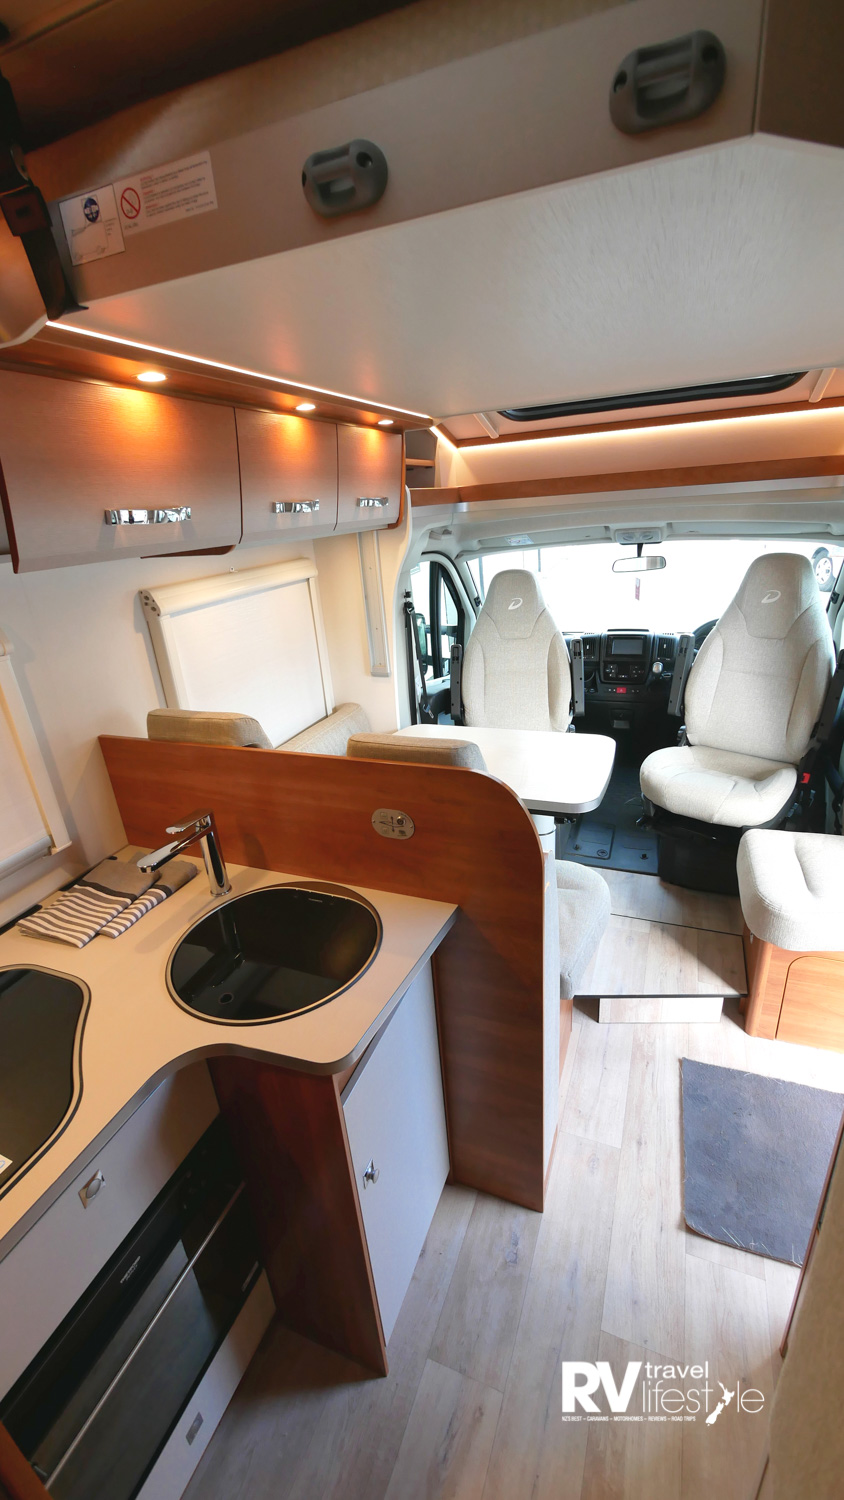 Upon entry the step-up dinette to the right with swivel cab seats. To the left is the kitchen area